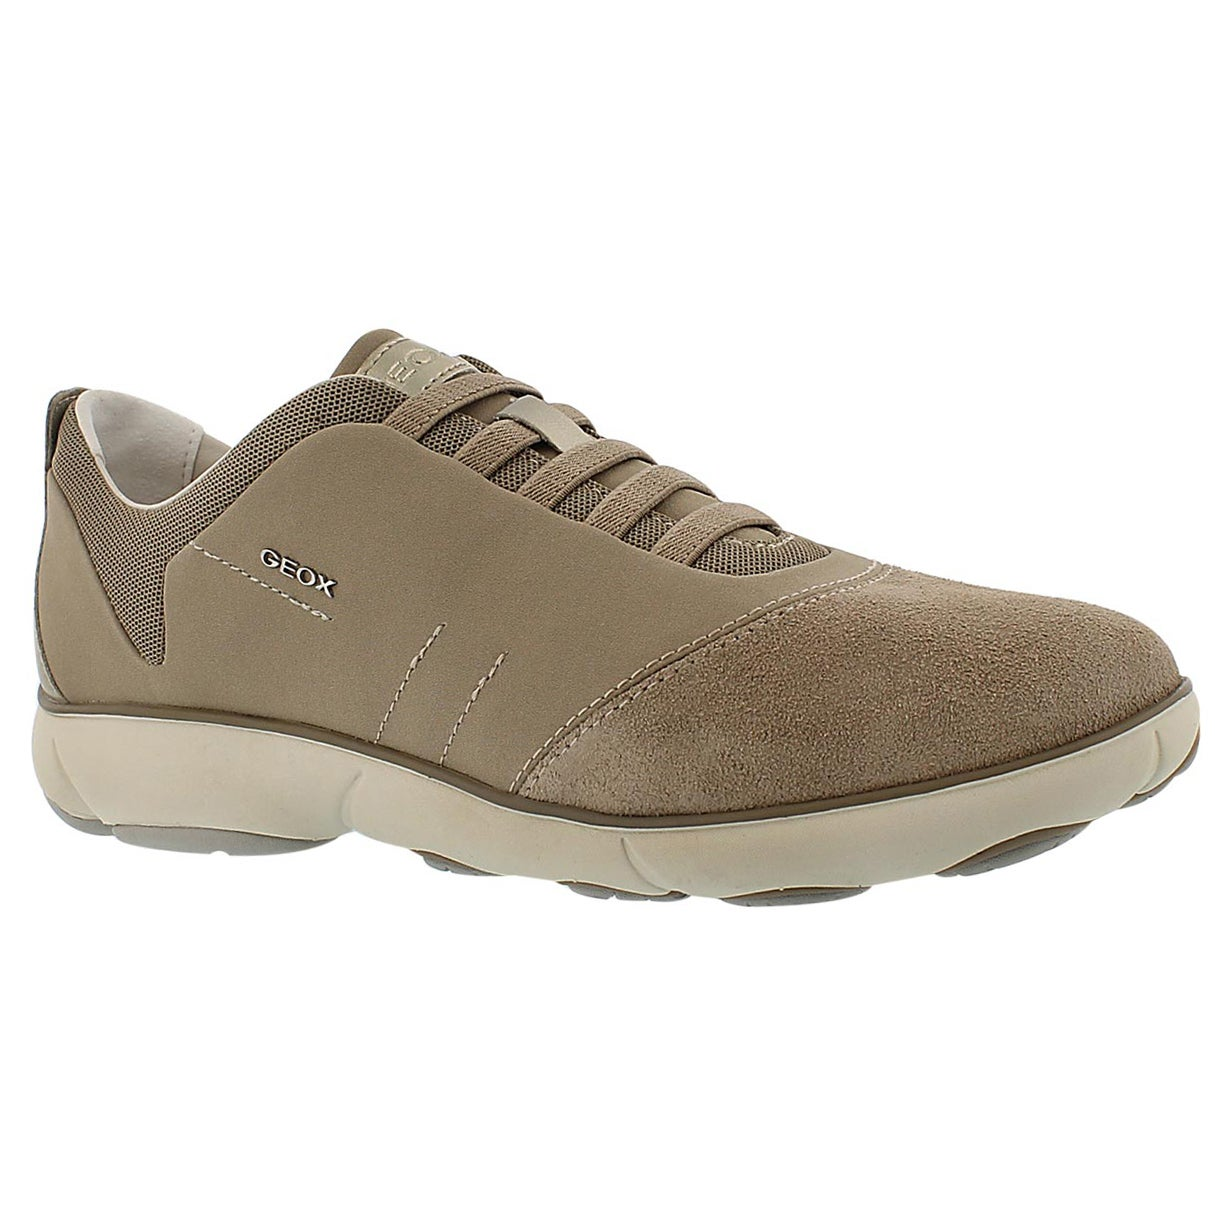 Women's NEBULA lightt taupe running shoes